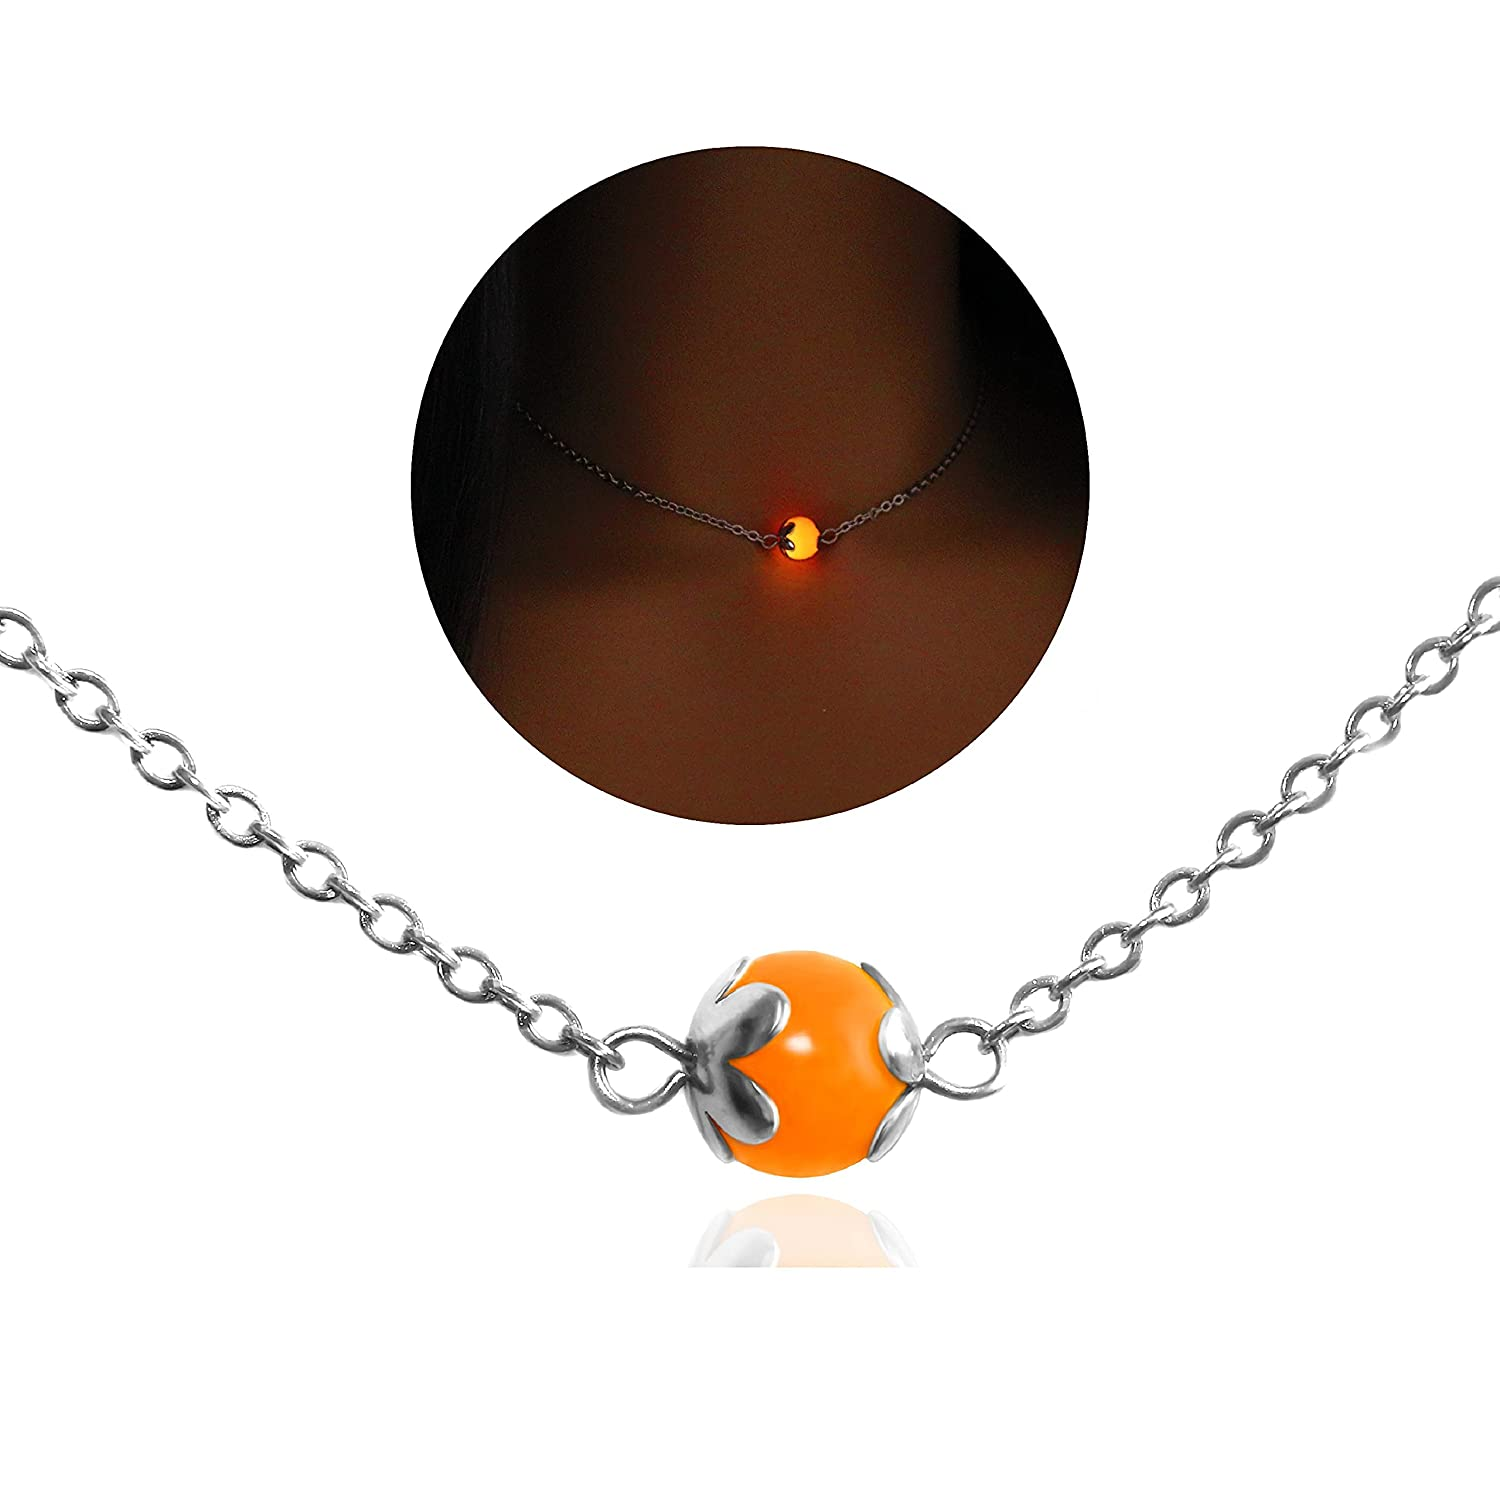 Glow in the dark Choker Recommendation Necklace Cho Steel Bead Magic Stainless Nippon regular agency